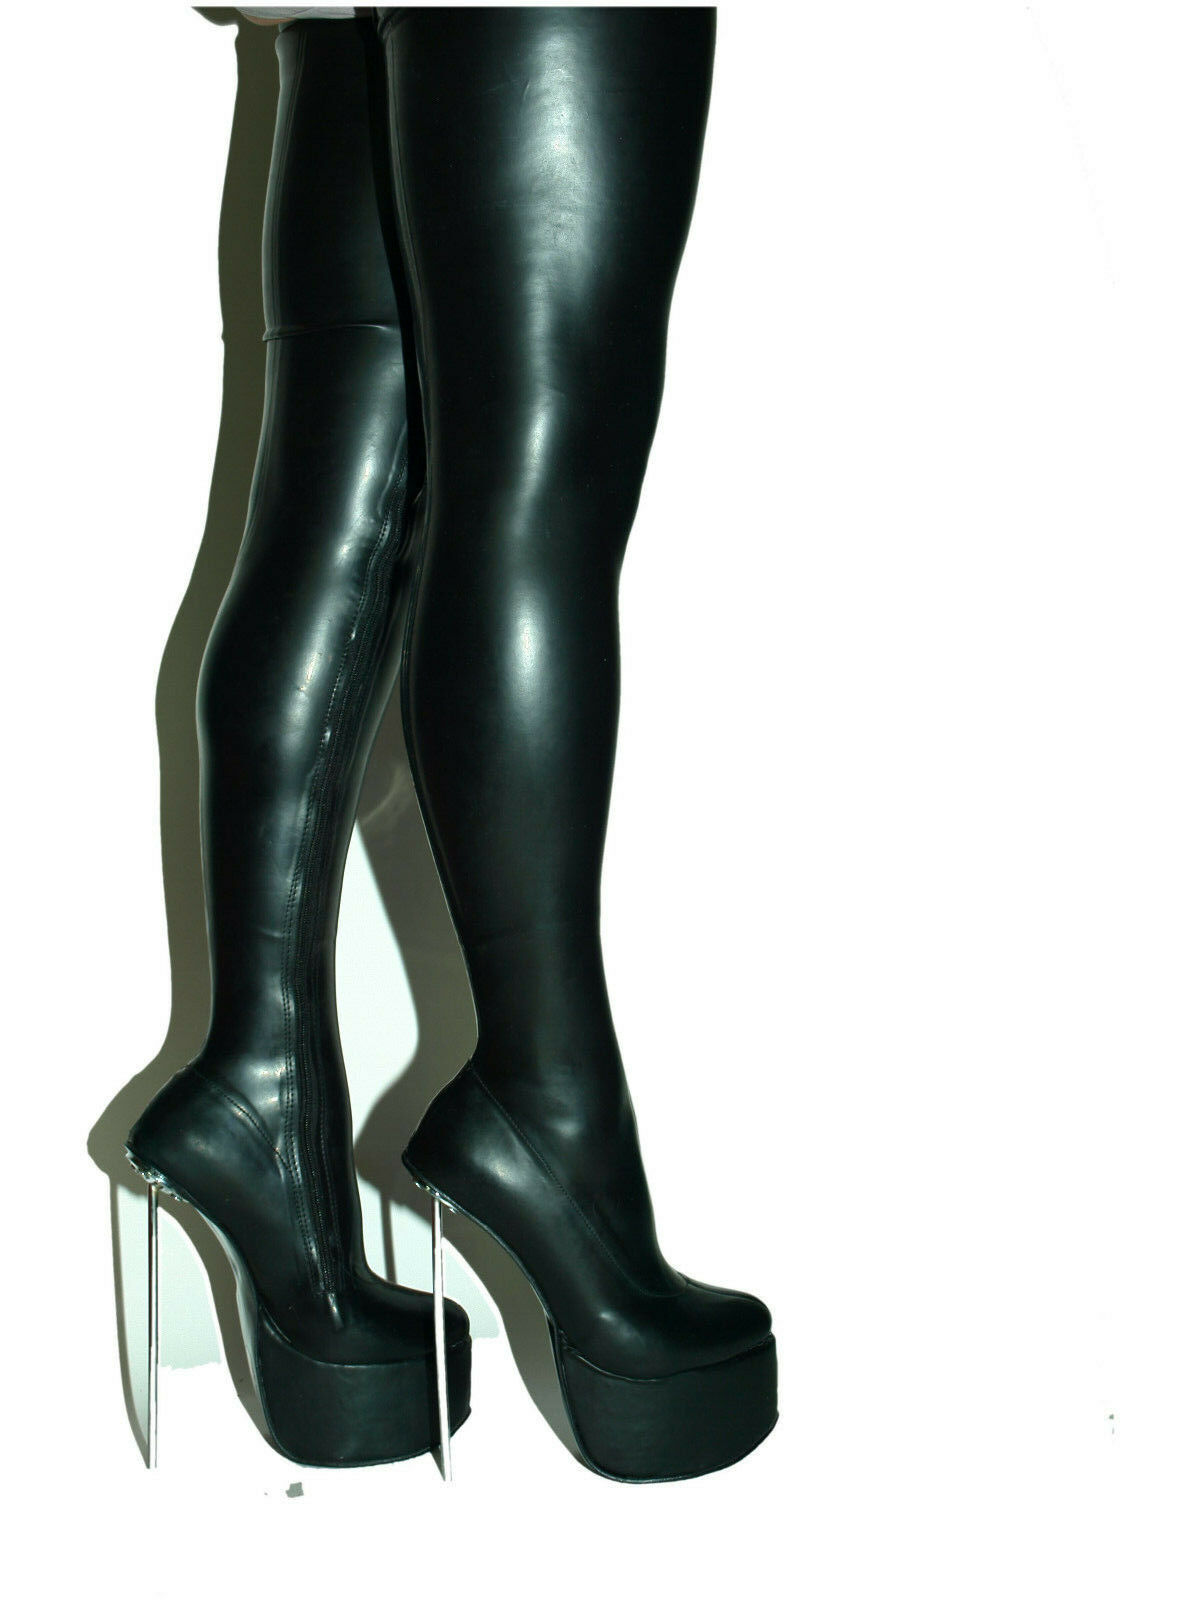 PROMOTIONS LATEX RUBBER HIGHS BOOTS  SIZE 5-16 HEELS-8 -  20cm PRODUCE POLAND